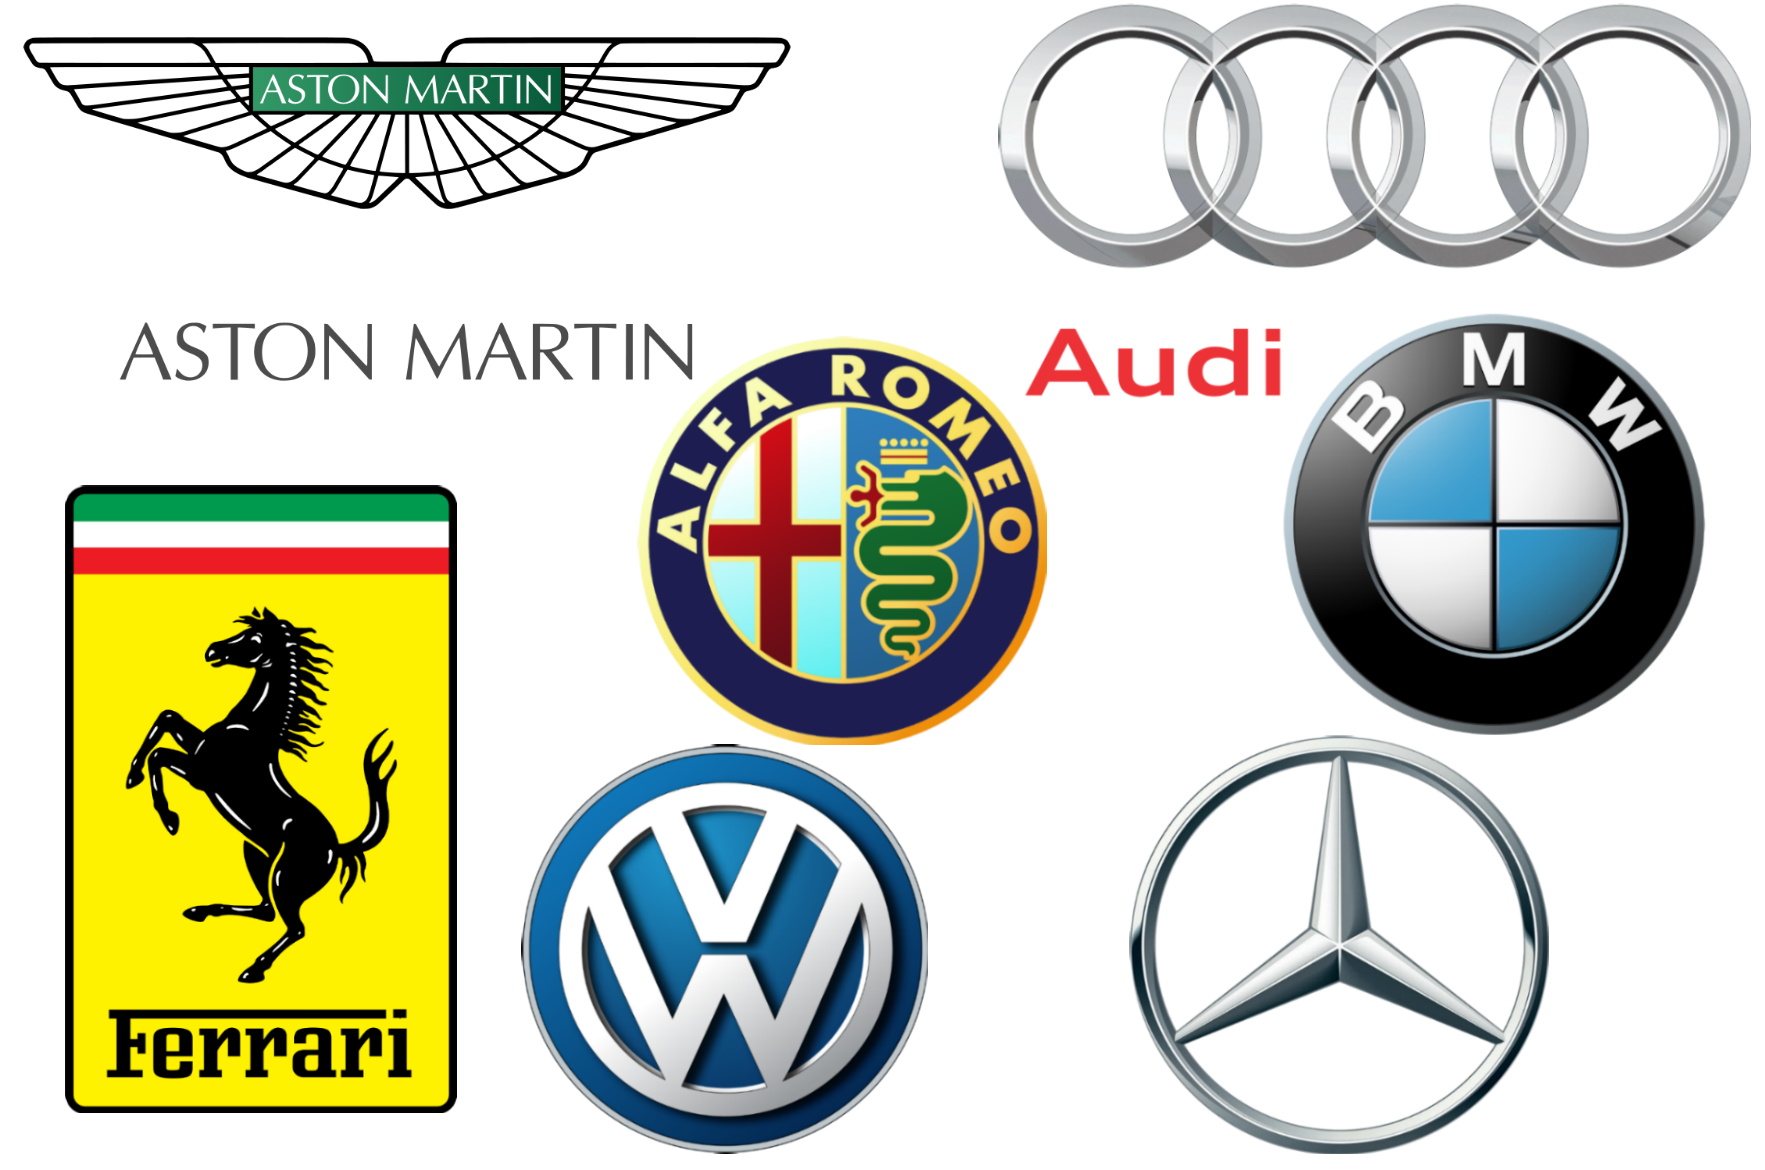 European Car Brands Companies And Manufacturers Car Brand Names Com